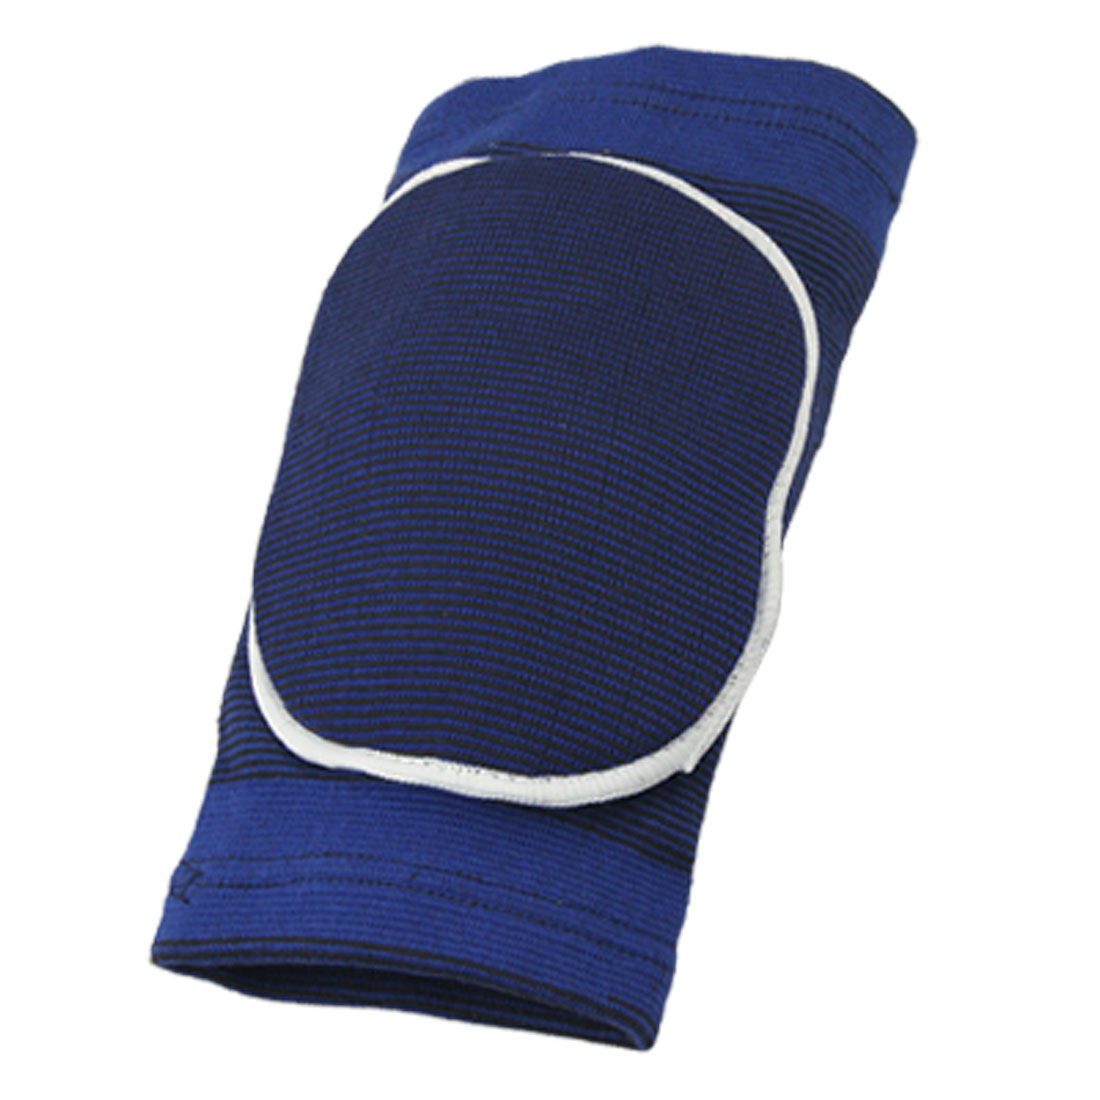 1PCS Blue Sponge Padded Stretchy Pullover Knee Support Brace